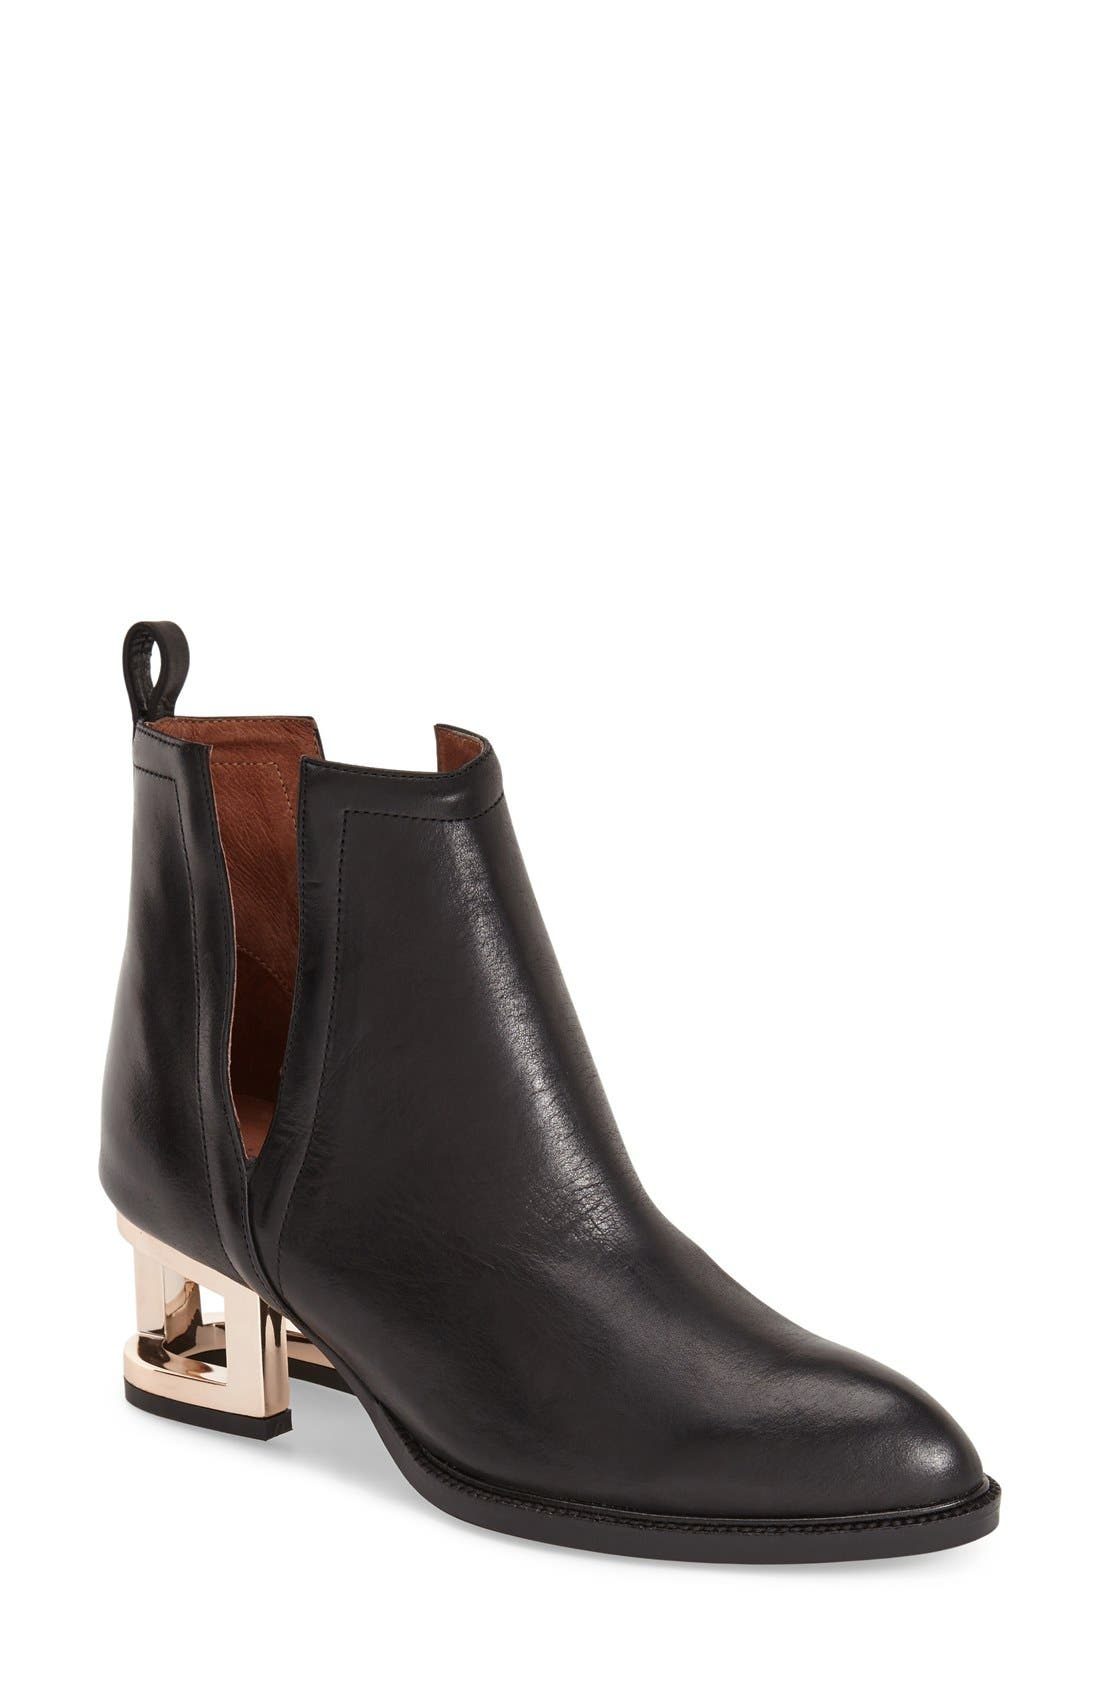 Alternate Image 1 Selected - Jeffrey Campbell 'Musk' Cage Heel Ankle Boot (Women)